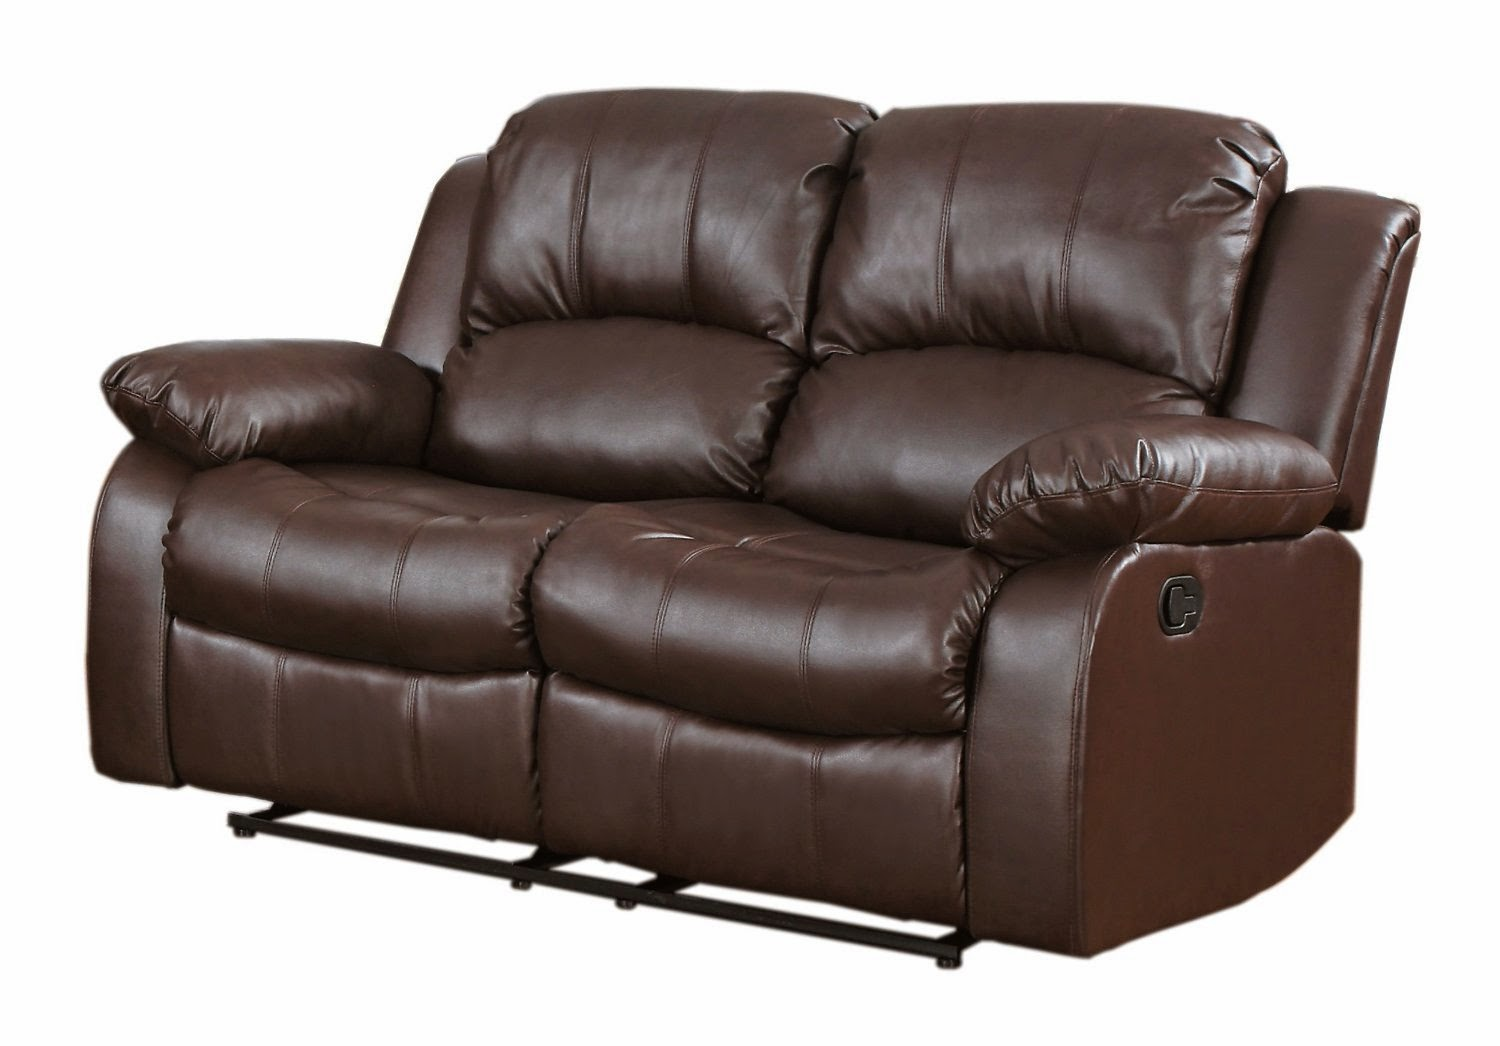 Where is the best place to buy recliner sofa 2 seater Reclining leather sofa and loveseat